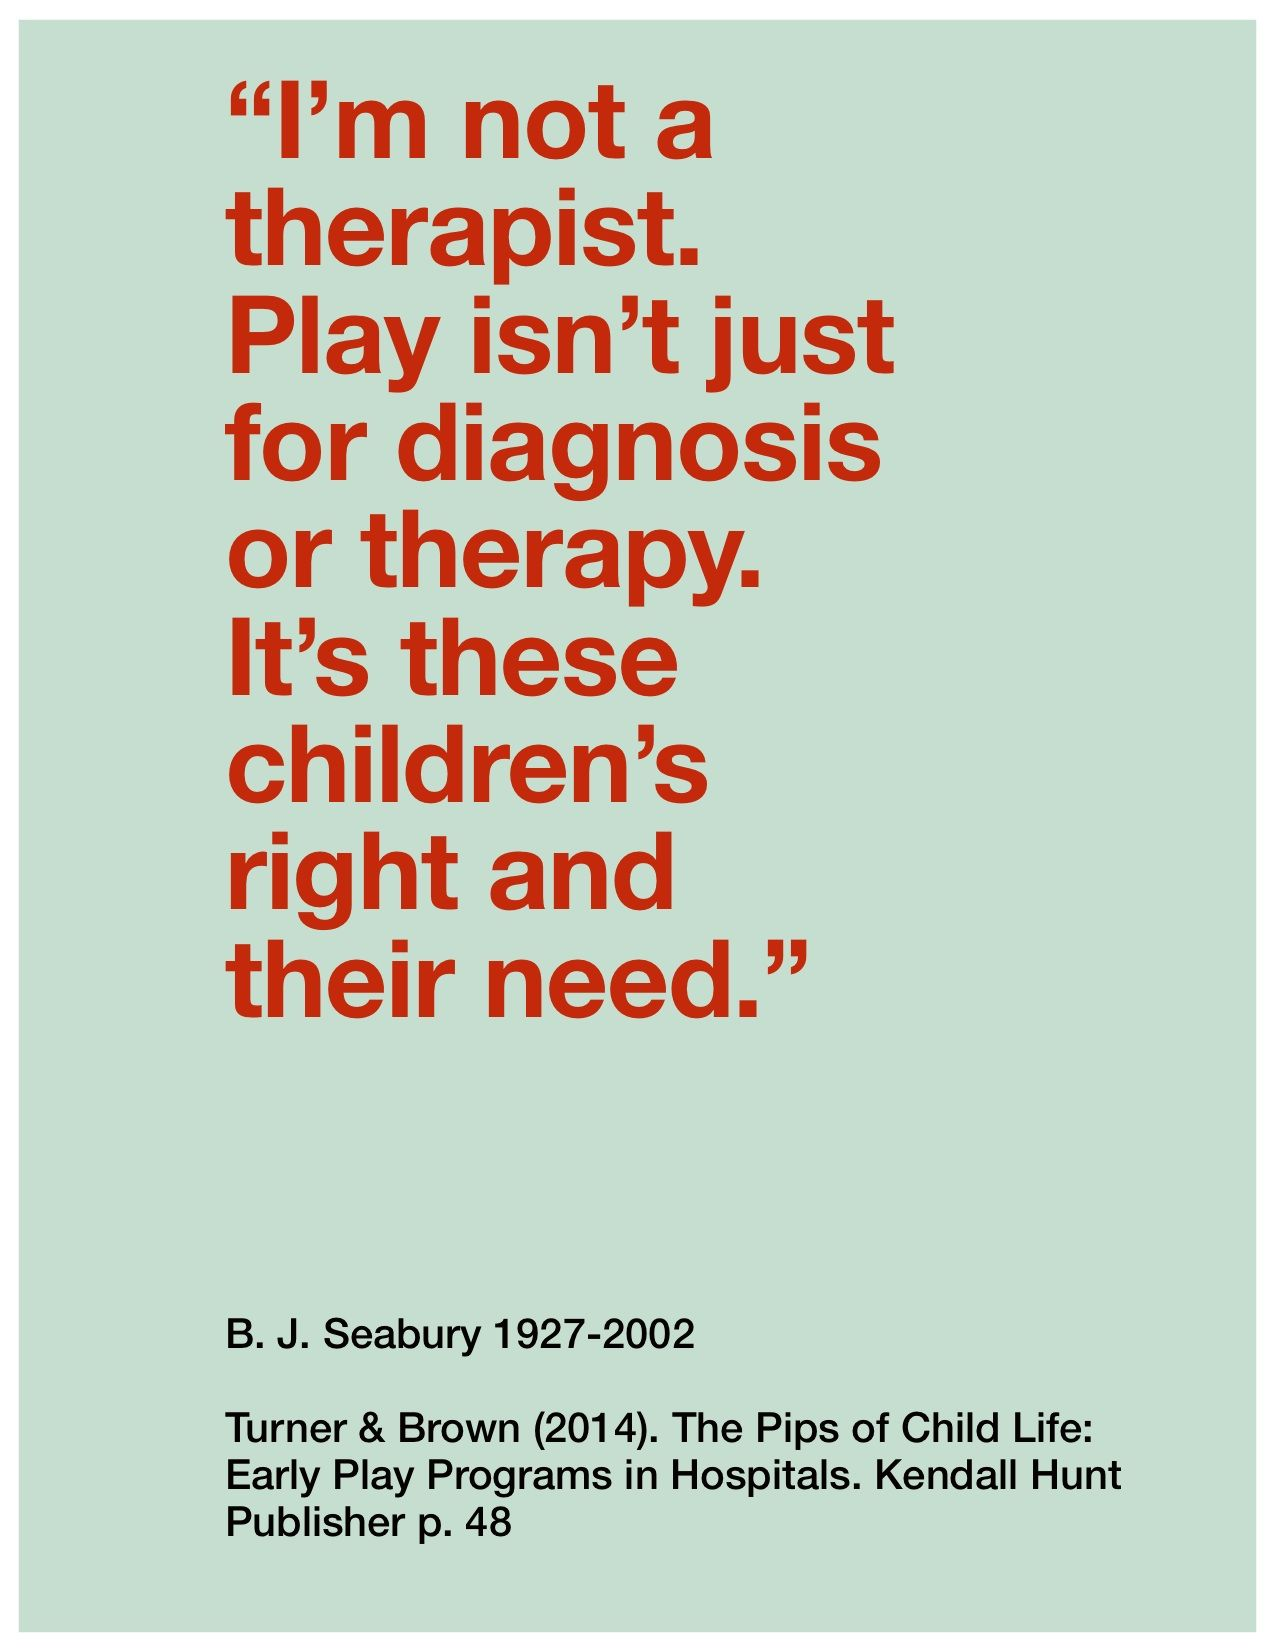 I Am Going To Introduce A Series Of Quotes Relevant To The History Of Play Programs In Hospitals Child Life Specialist Child Life Childrens Rights